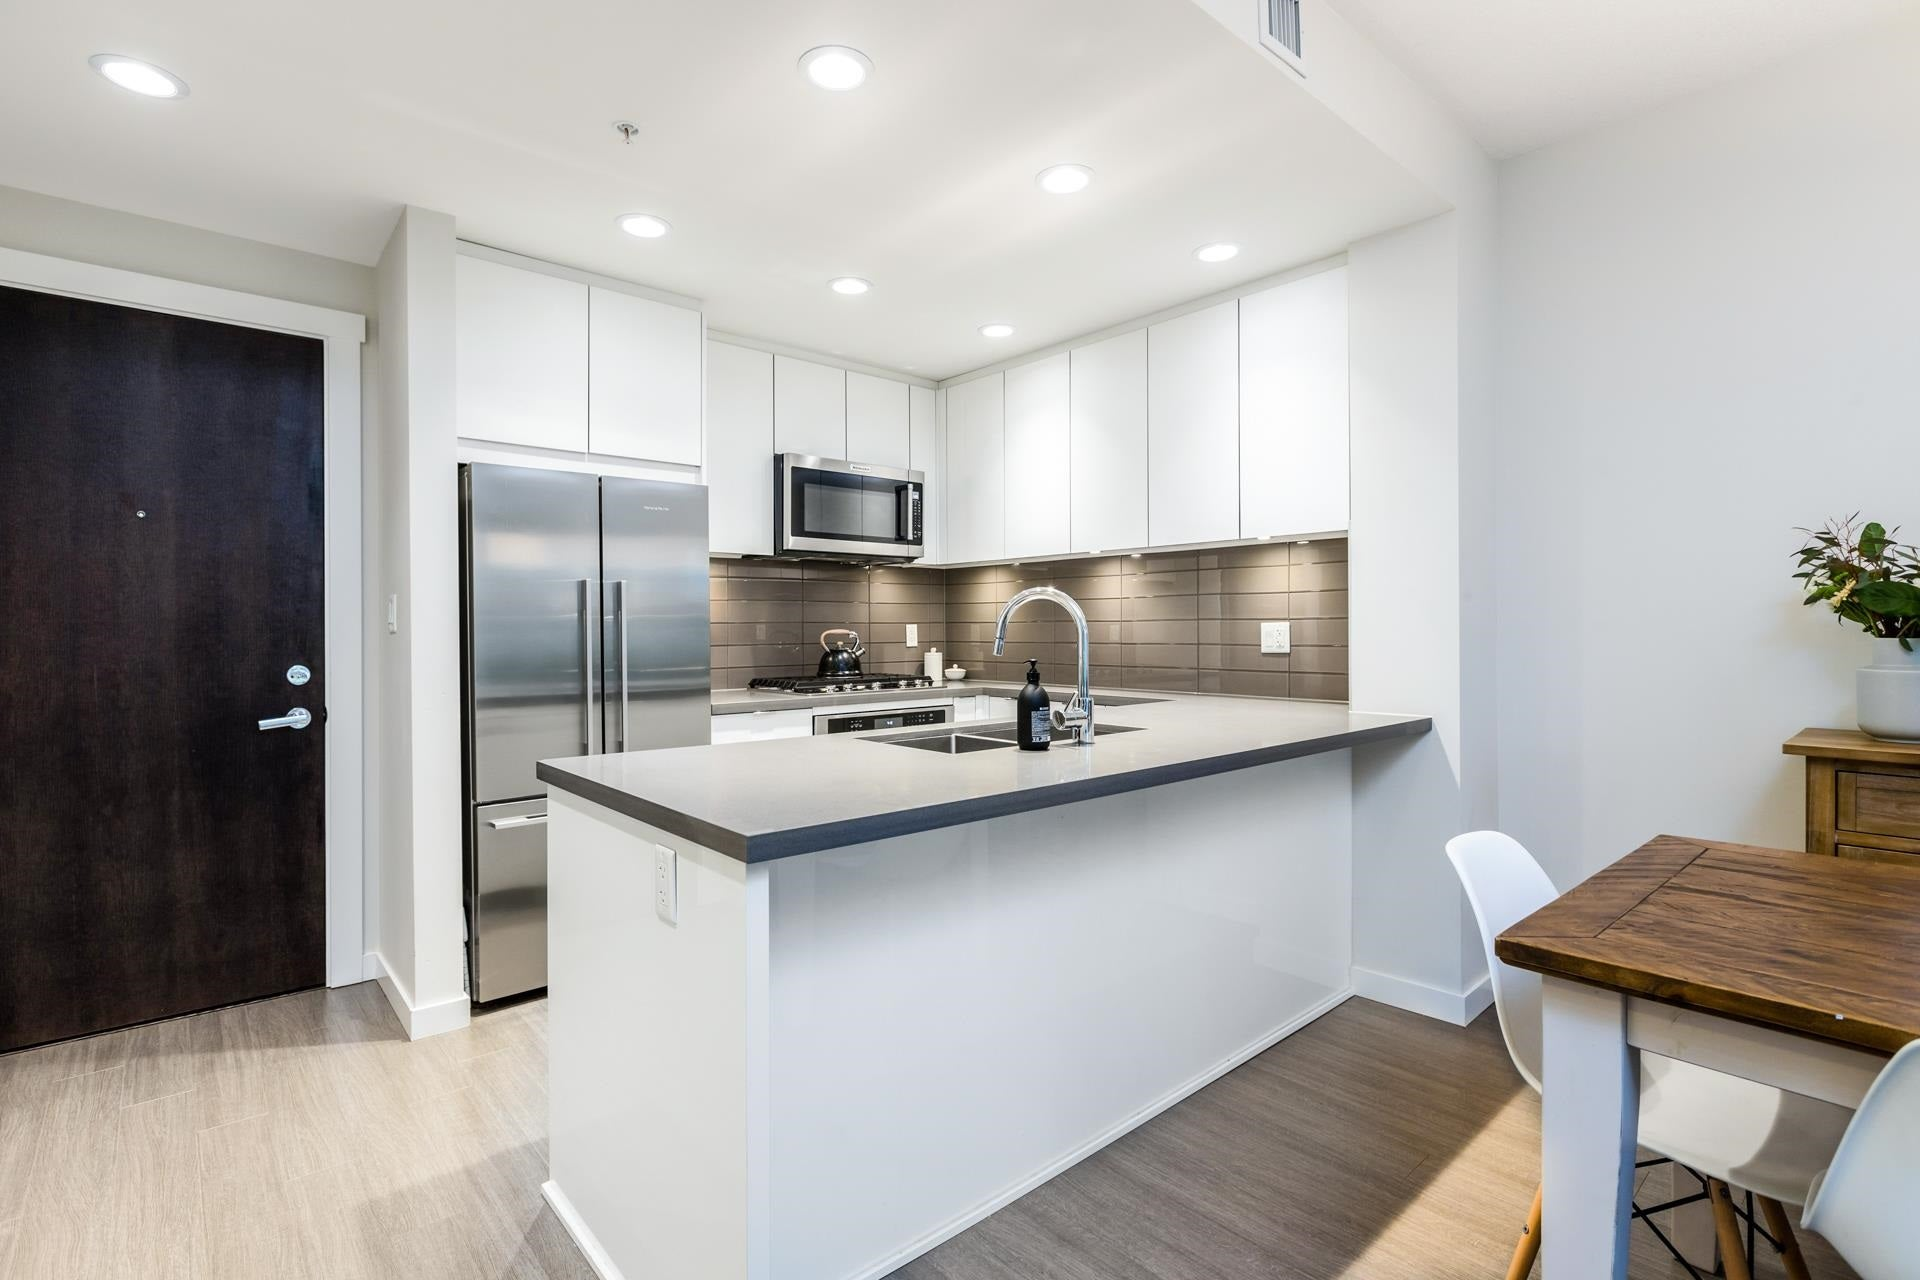 207 255 W 1ST STREET - Lower Lonsdale Apartment/Condo for sale, 2 Bedrooms (R2603882) - #7